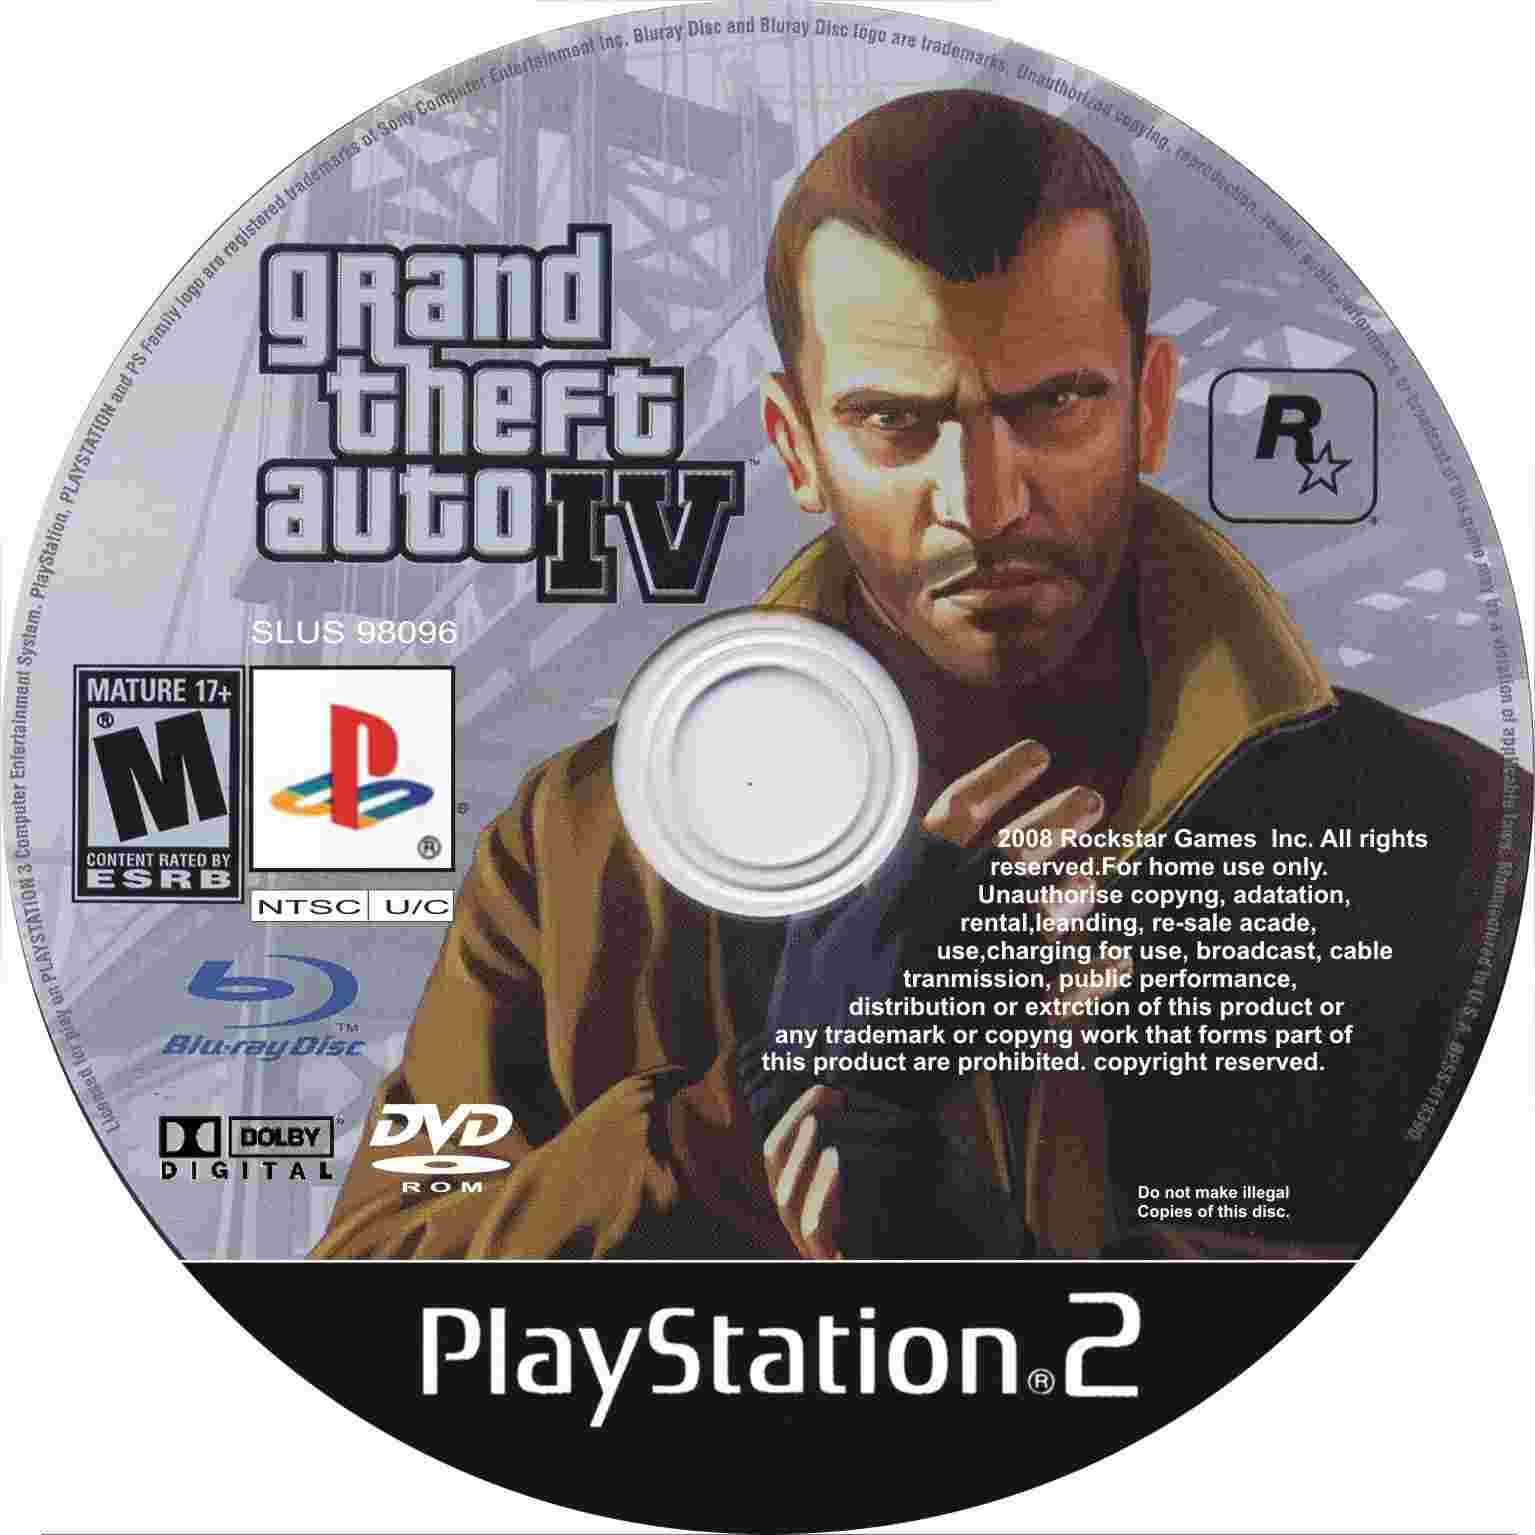 Gta 5 Disc Pc – Jerusalem House